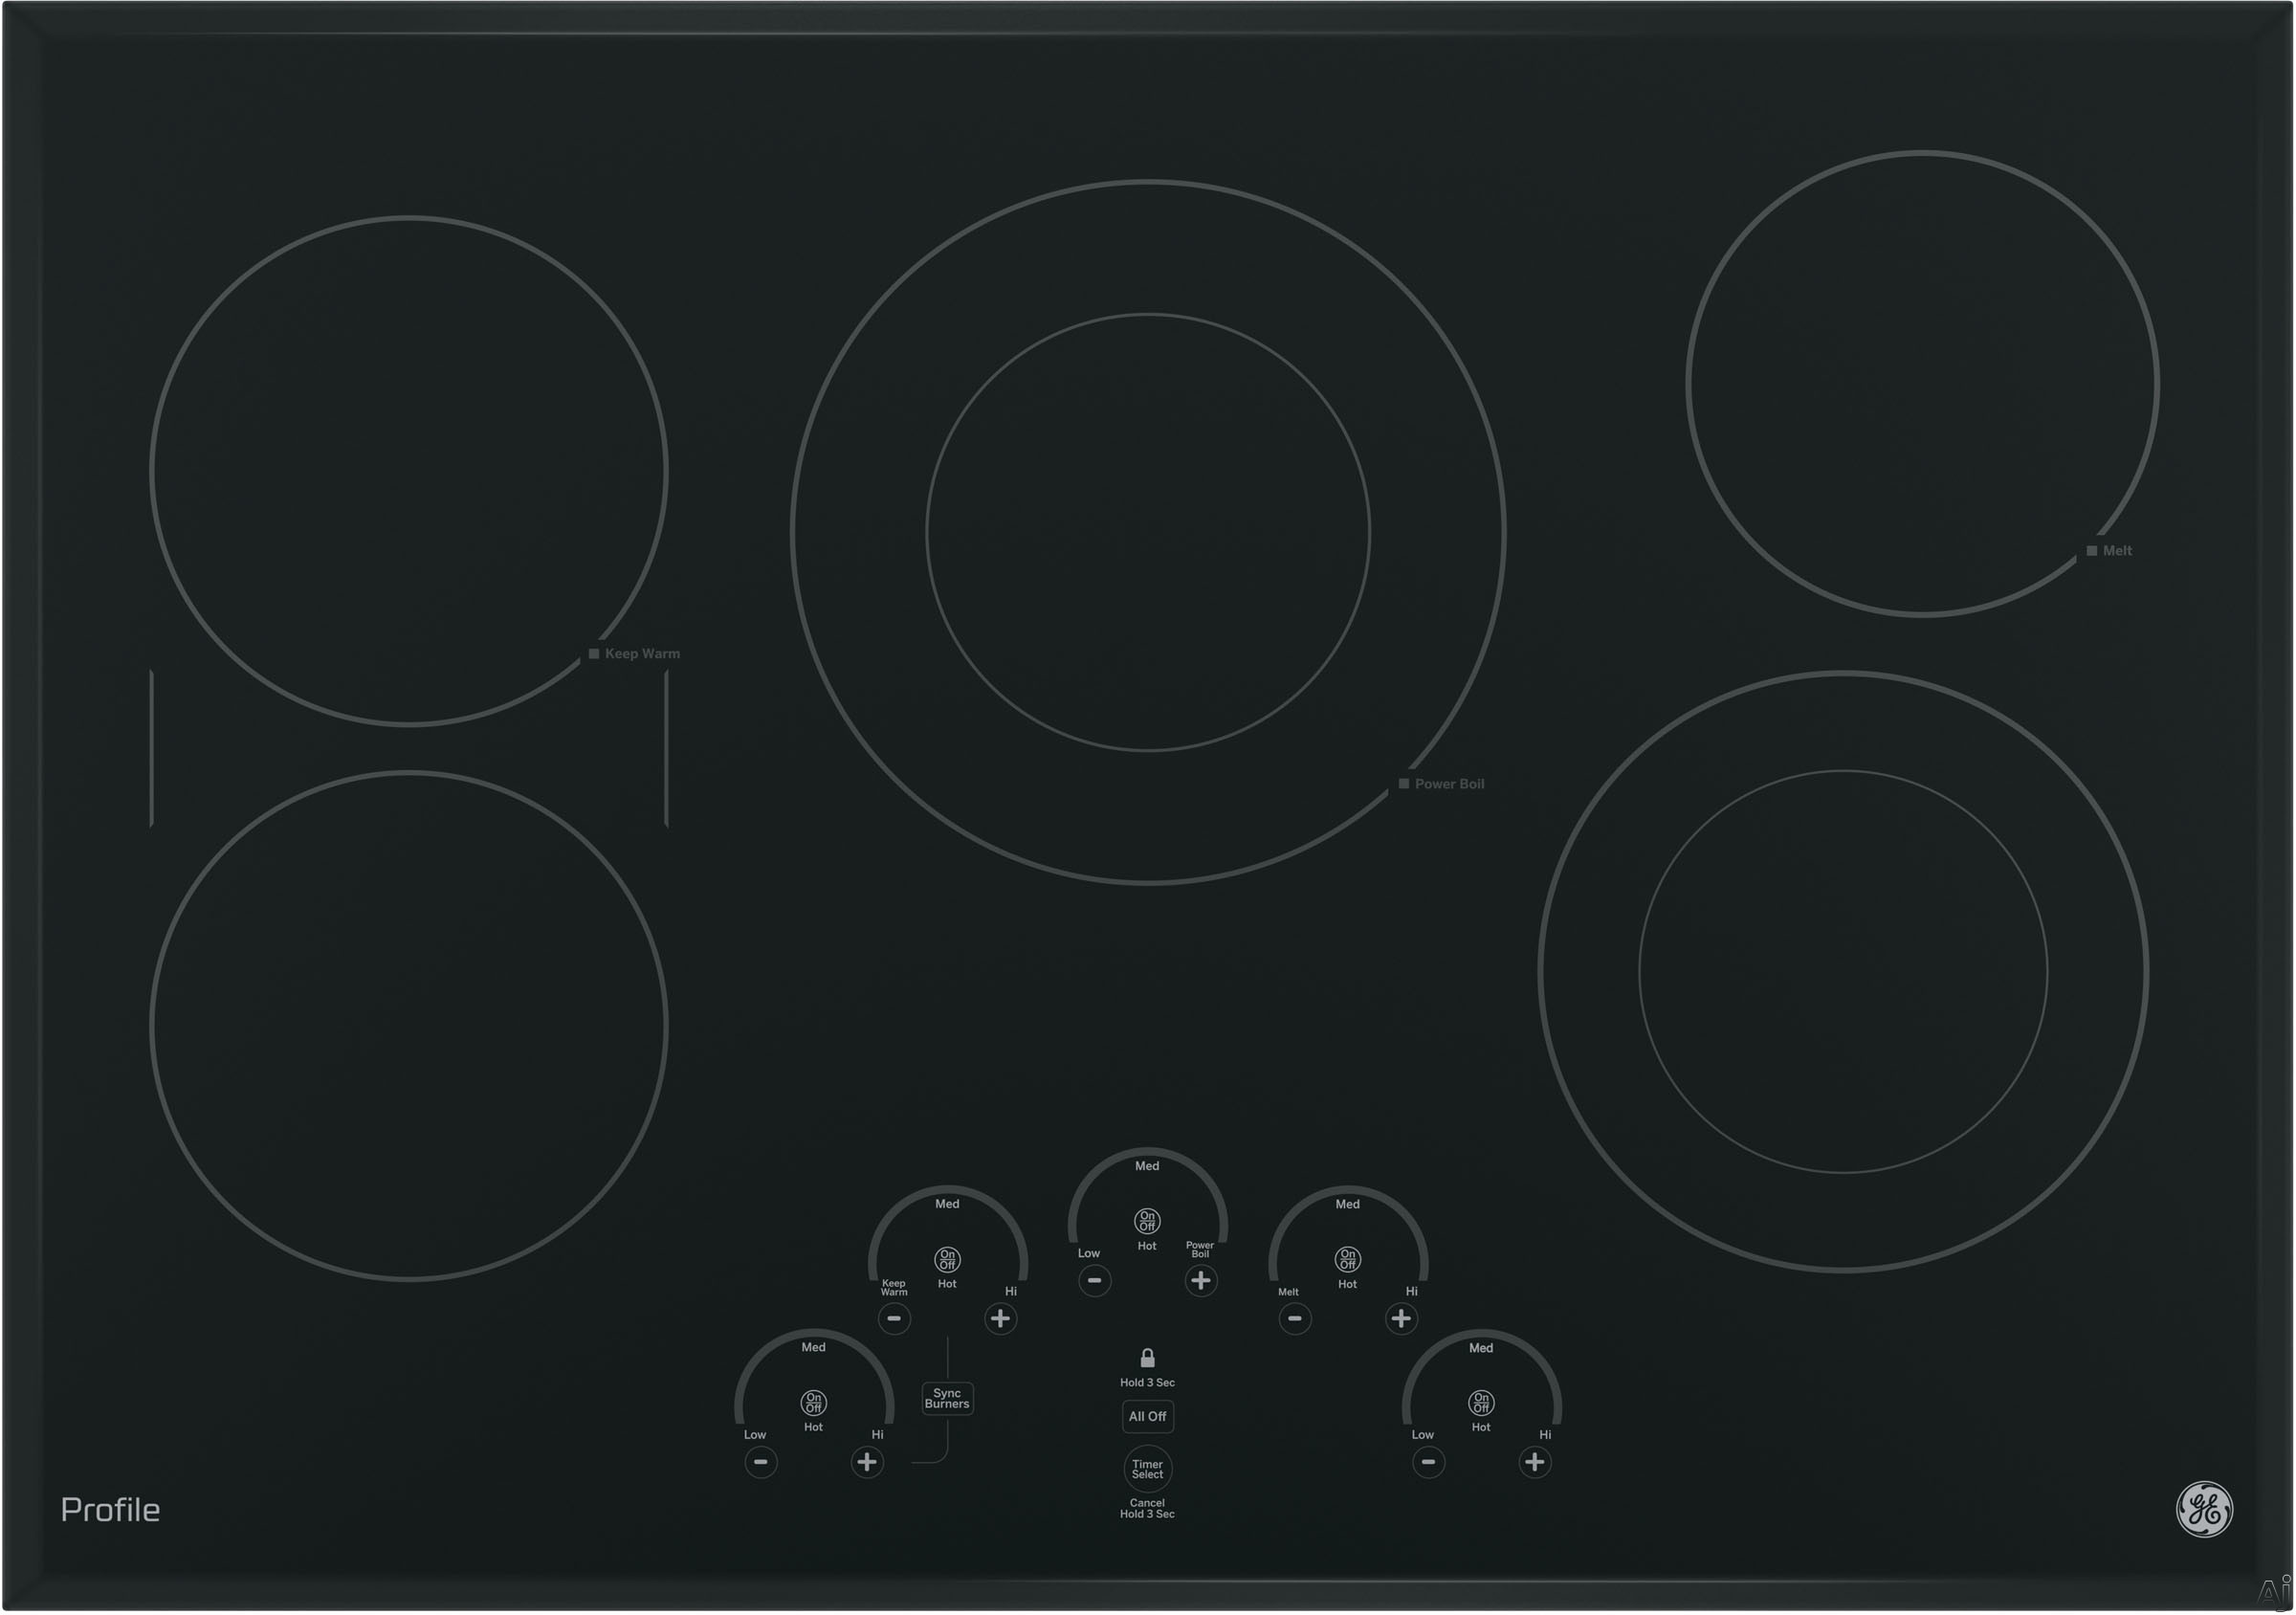 GE Profile PP9030DJBB 30 Inch Smoothtop Electric Cooktop with 5 Radiant Elements, Left-Side Bridge SyncBurners, Glide Touch Controls, Multi-Element Timers, Melt/Keep Warm Setting, ADA Compliant and GE